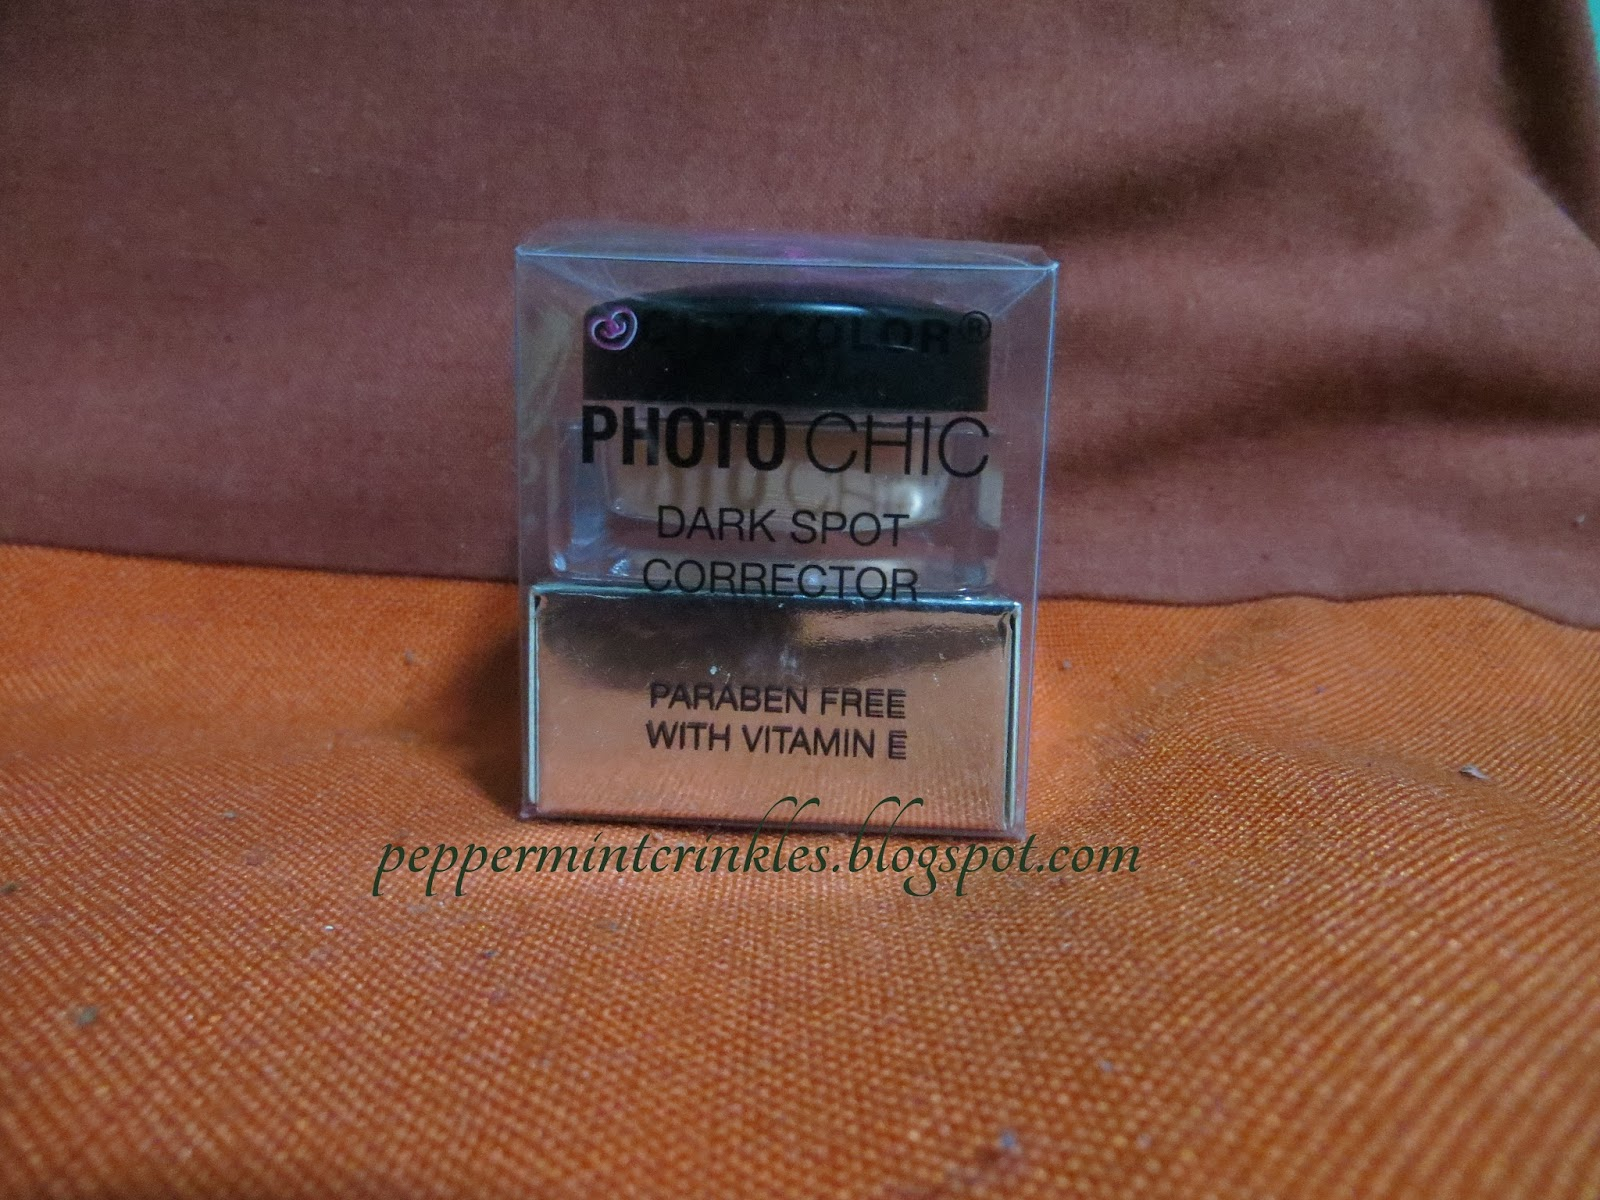 City Color Photo Chic Dark Spot Corrector ~ Peppermint Crinkles